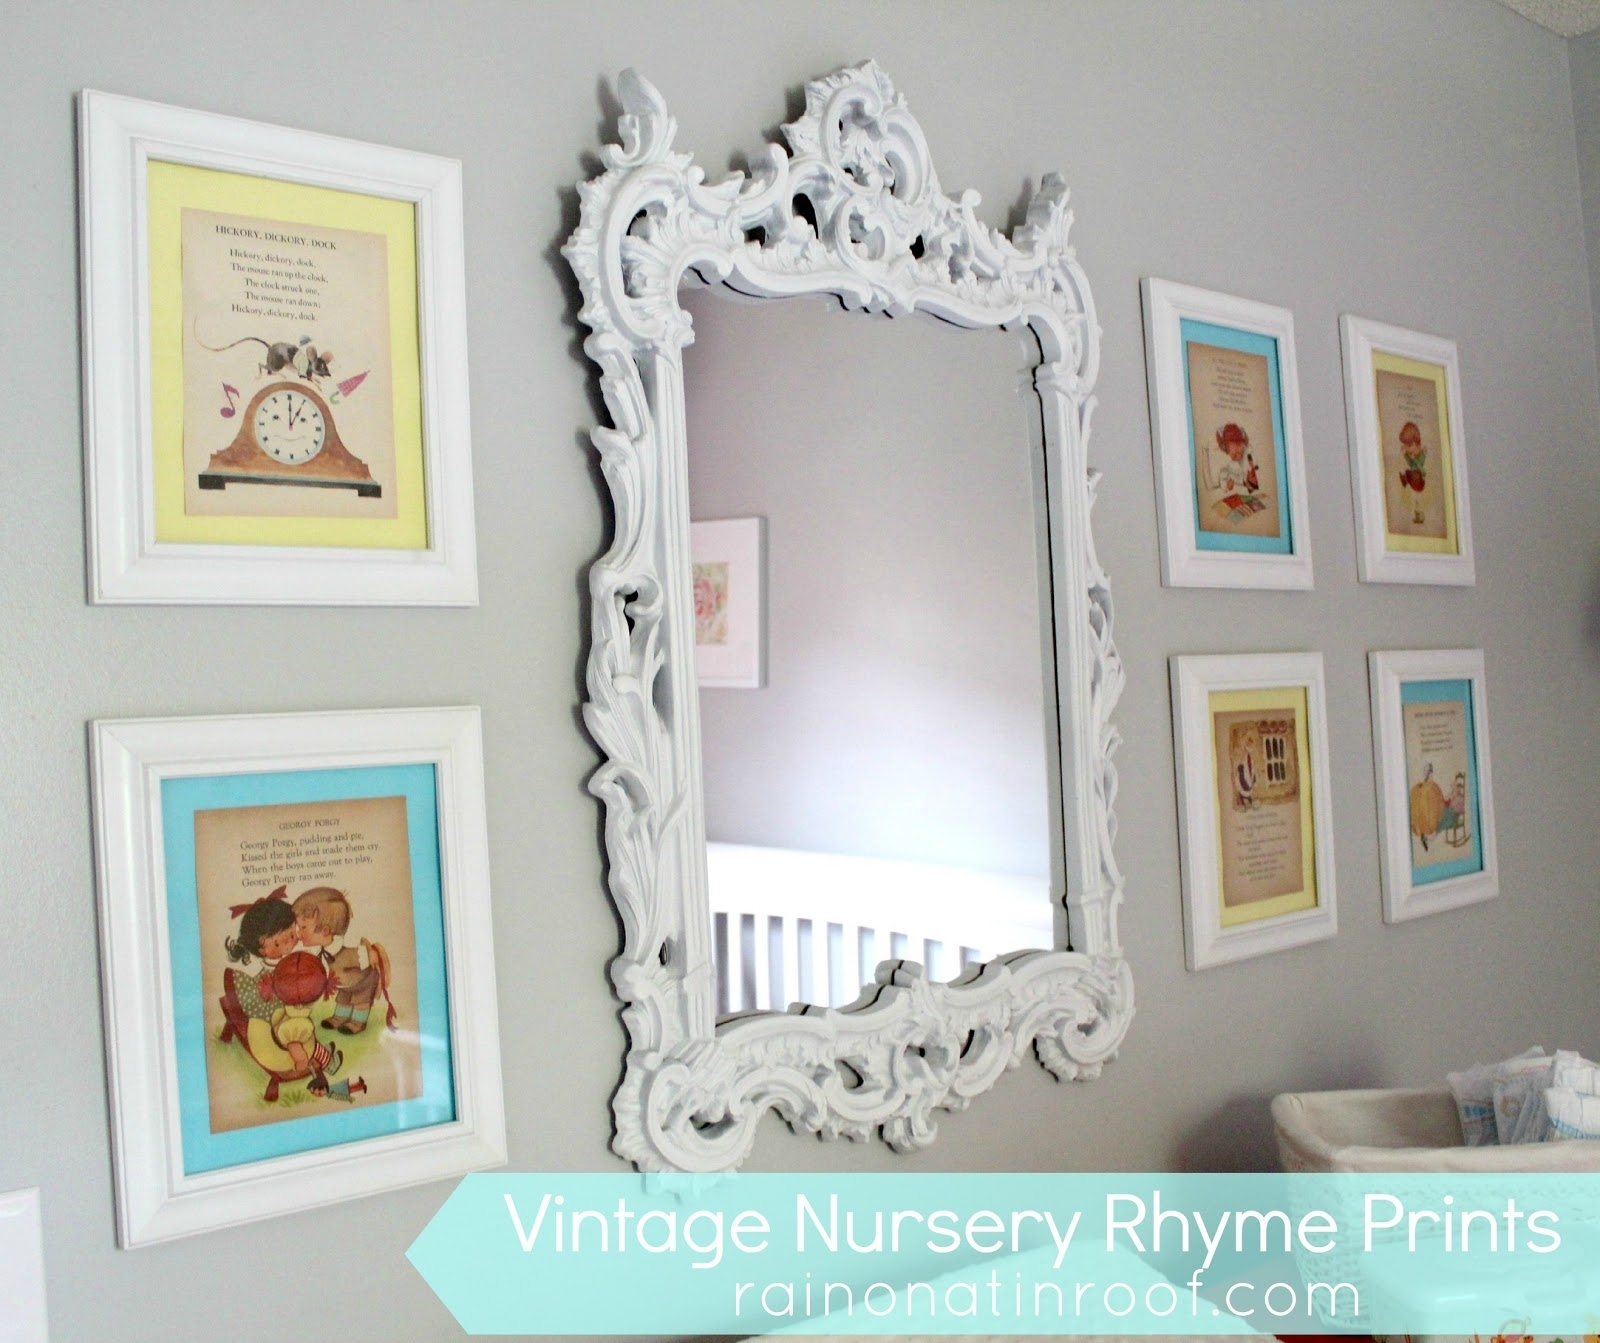 Diy Vintage Nursery Rhyme Prints Intended For Latest Cheap Framed Wall Art (View 15 of 20)